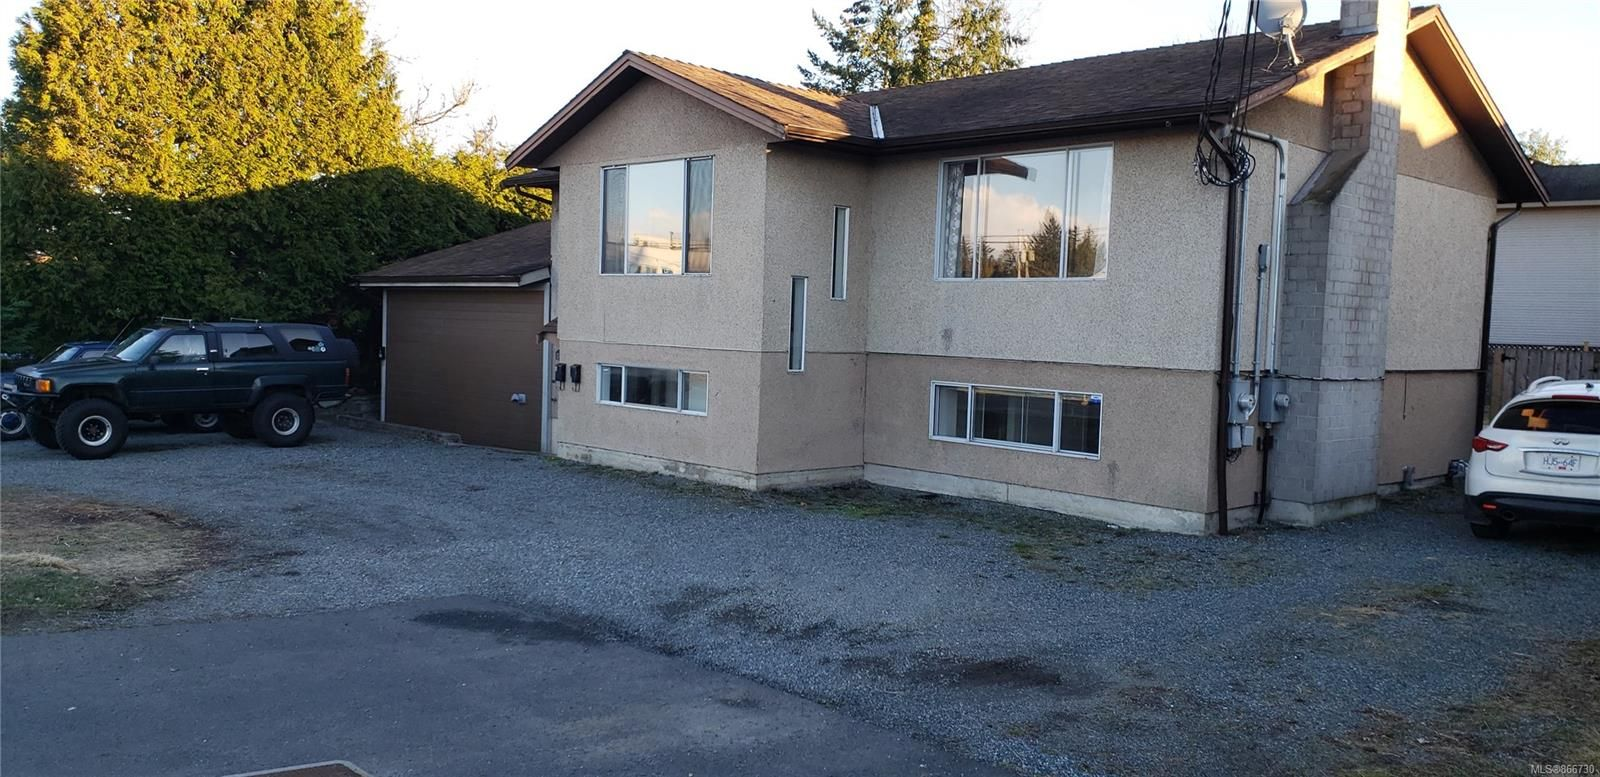 Main Photo: 1625 Northfield Rd in : Na Central Nanaimo House for sale (Nanaimo)  : MLS®# 866730